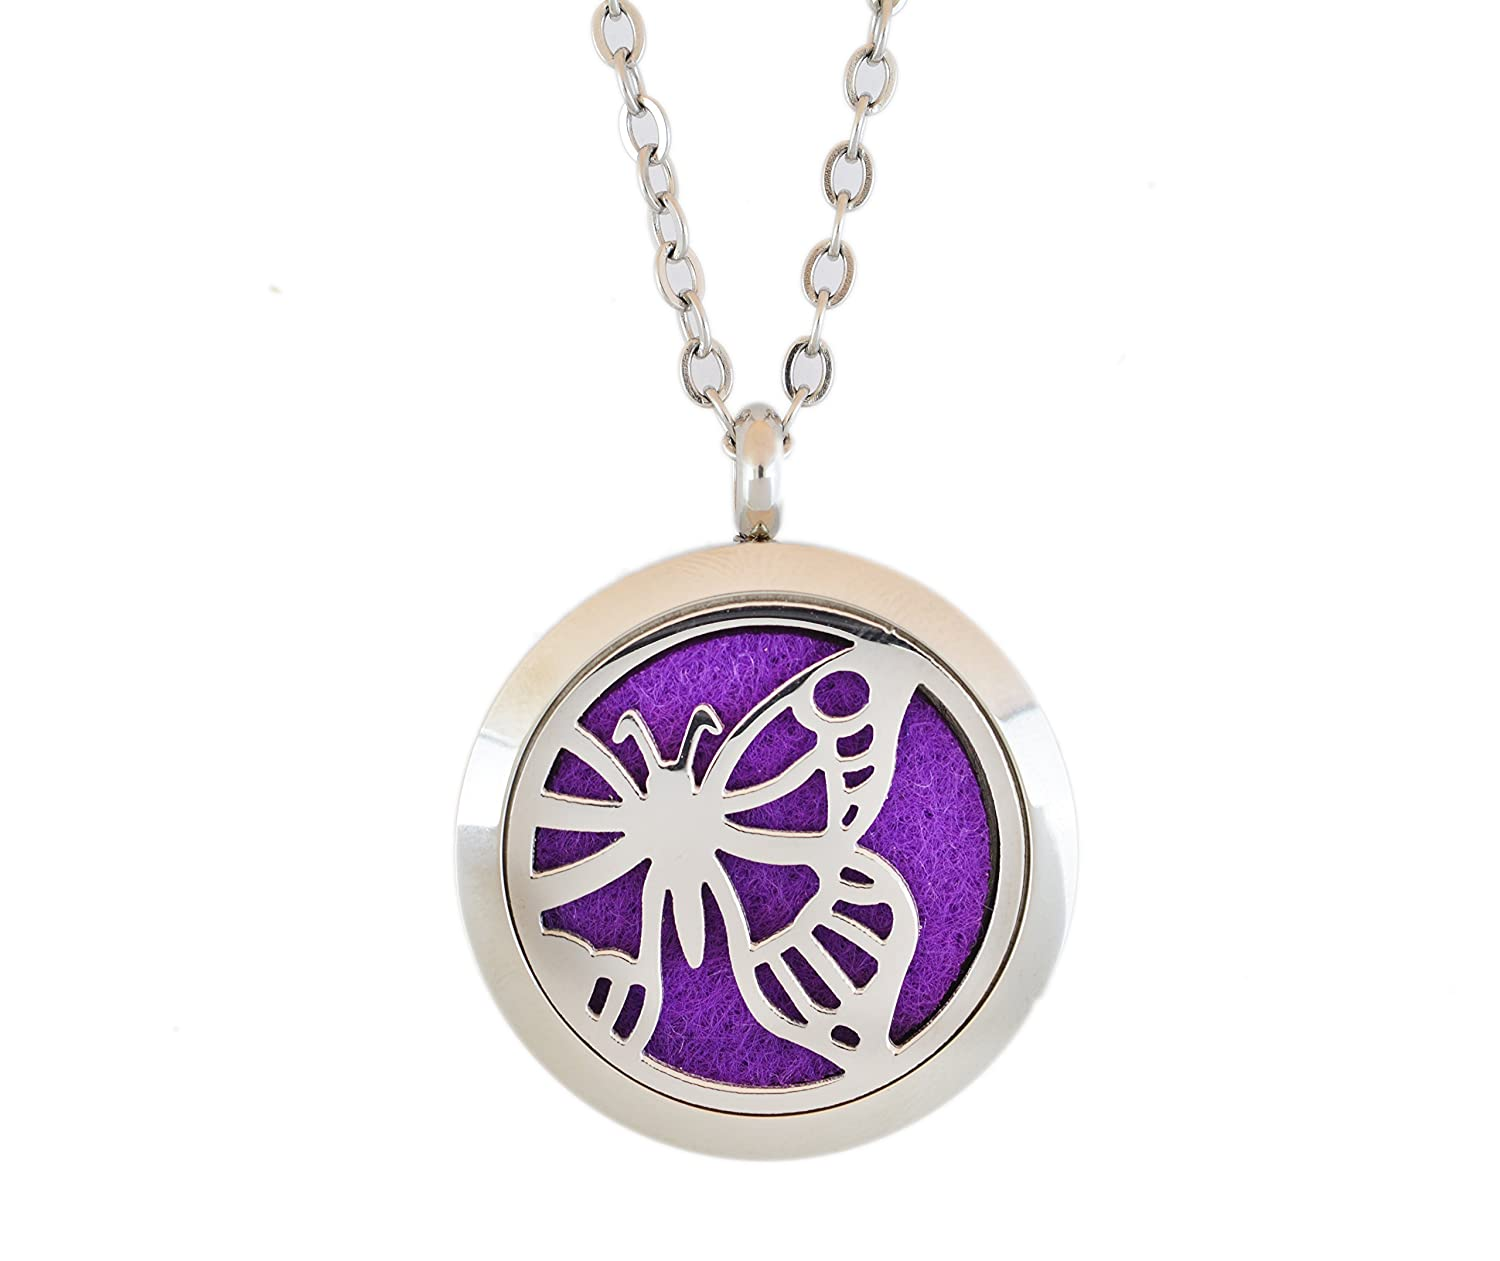 Aromatherapy Essential Oil Diffuser Stainless Steel 30MM Silver Magnetic Locket Pendant with Chain Necklace and Colored Refill Pads & Diffuser Bracelet all in a gift bag (butterfly1)